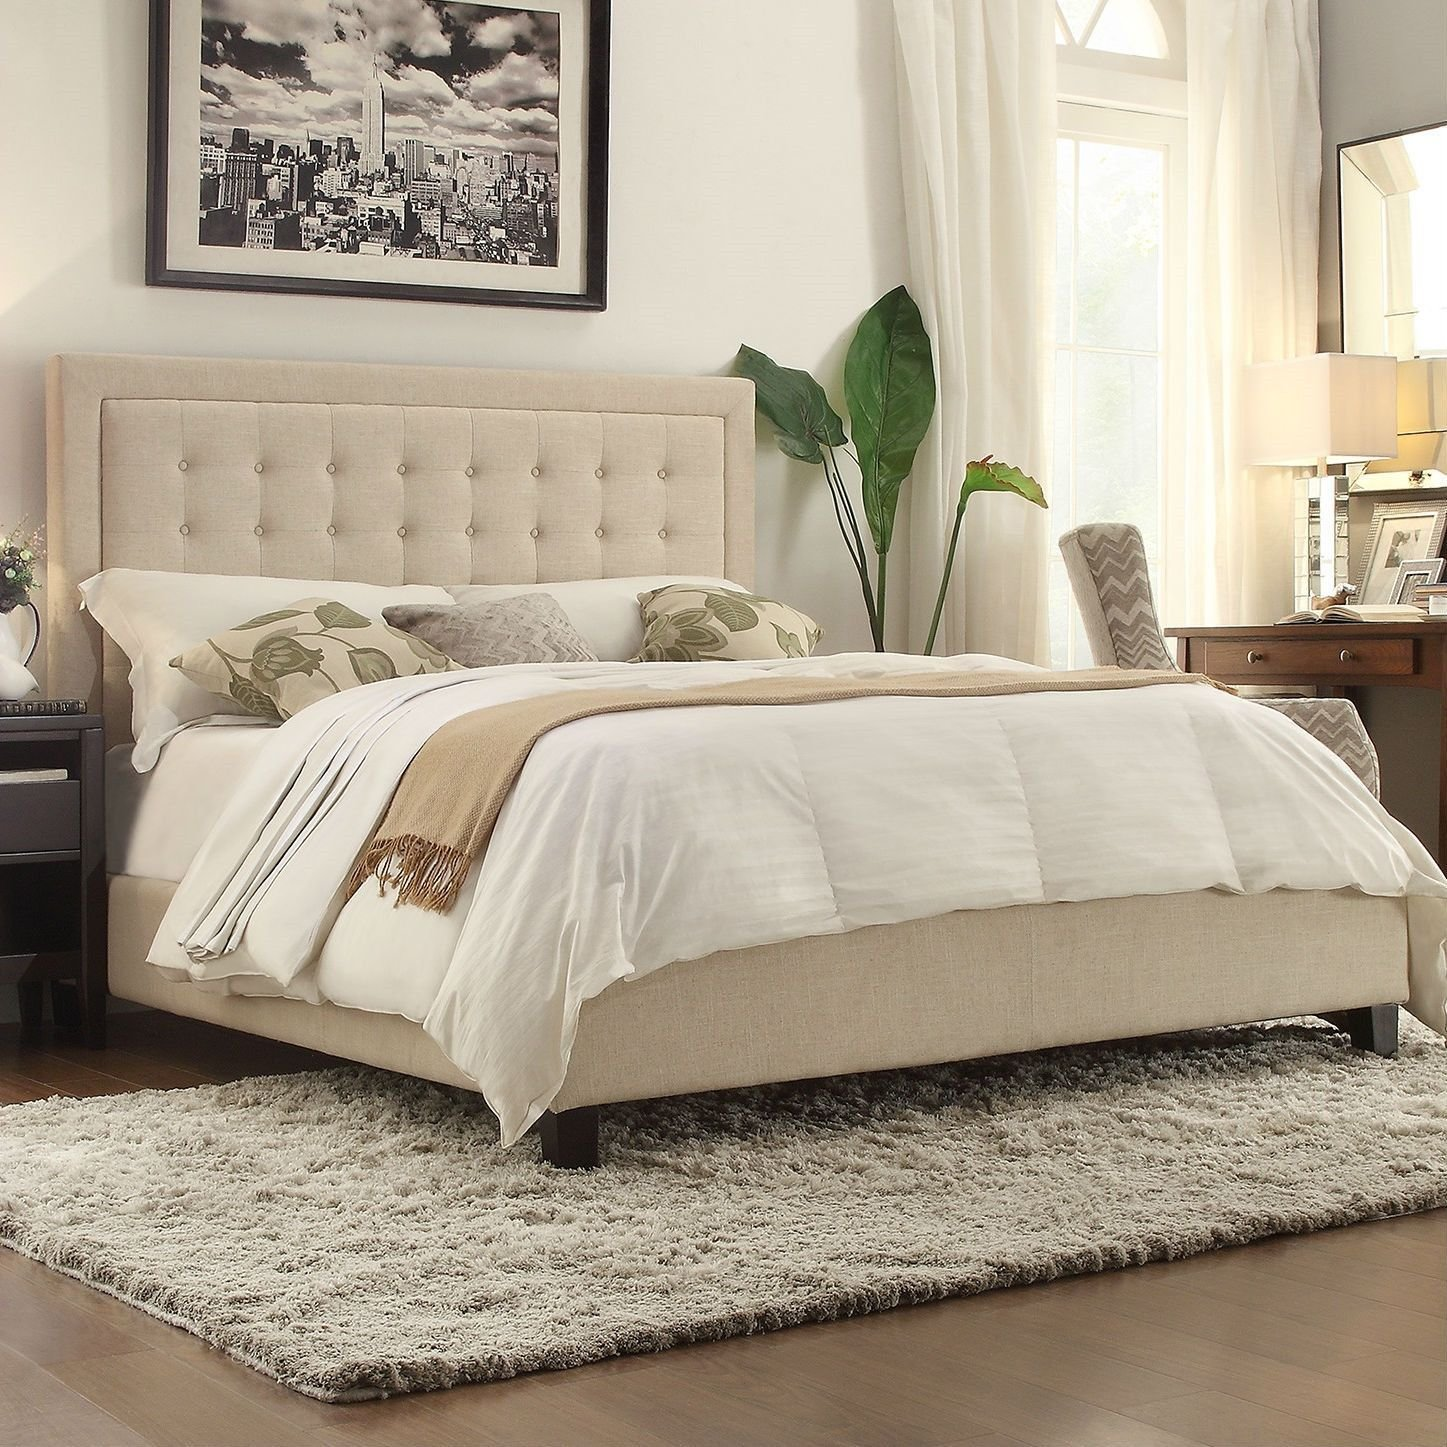 Best King Size Beige Upholstered Bed With Button Tufted With Pictures